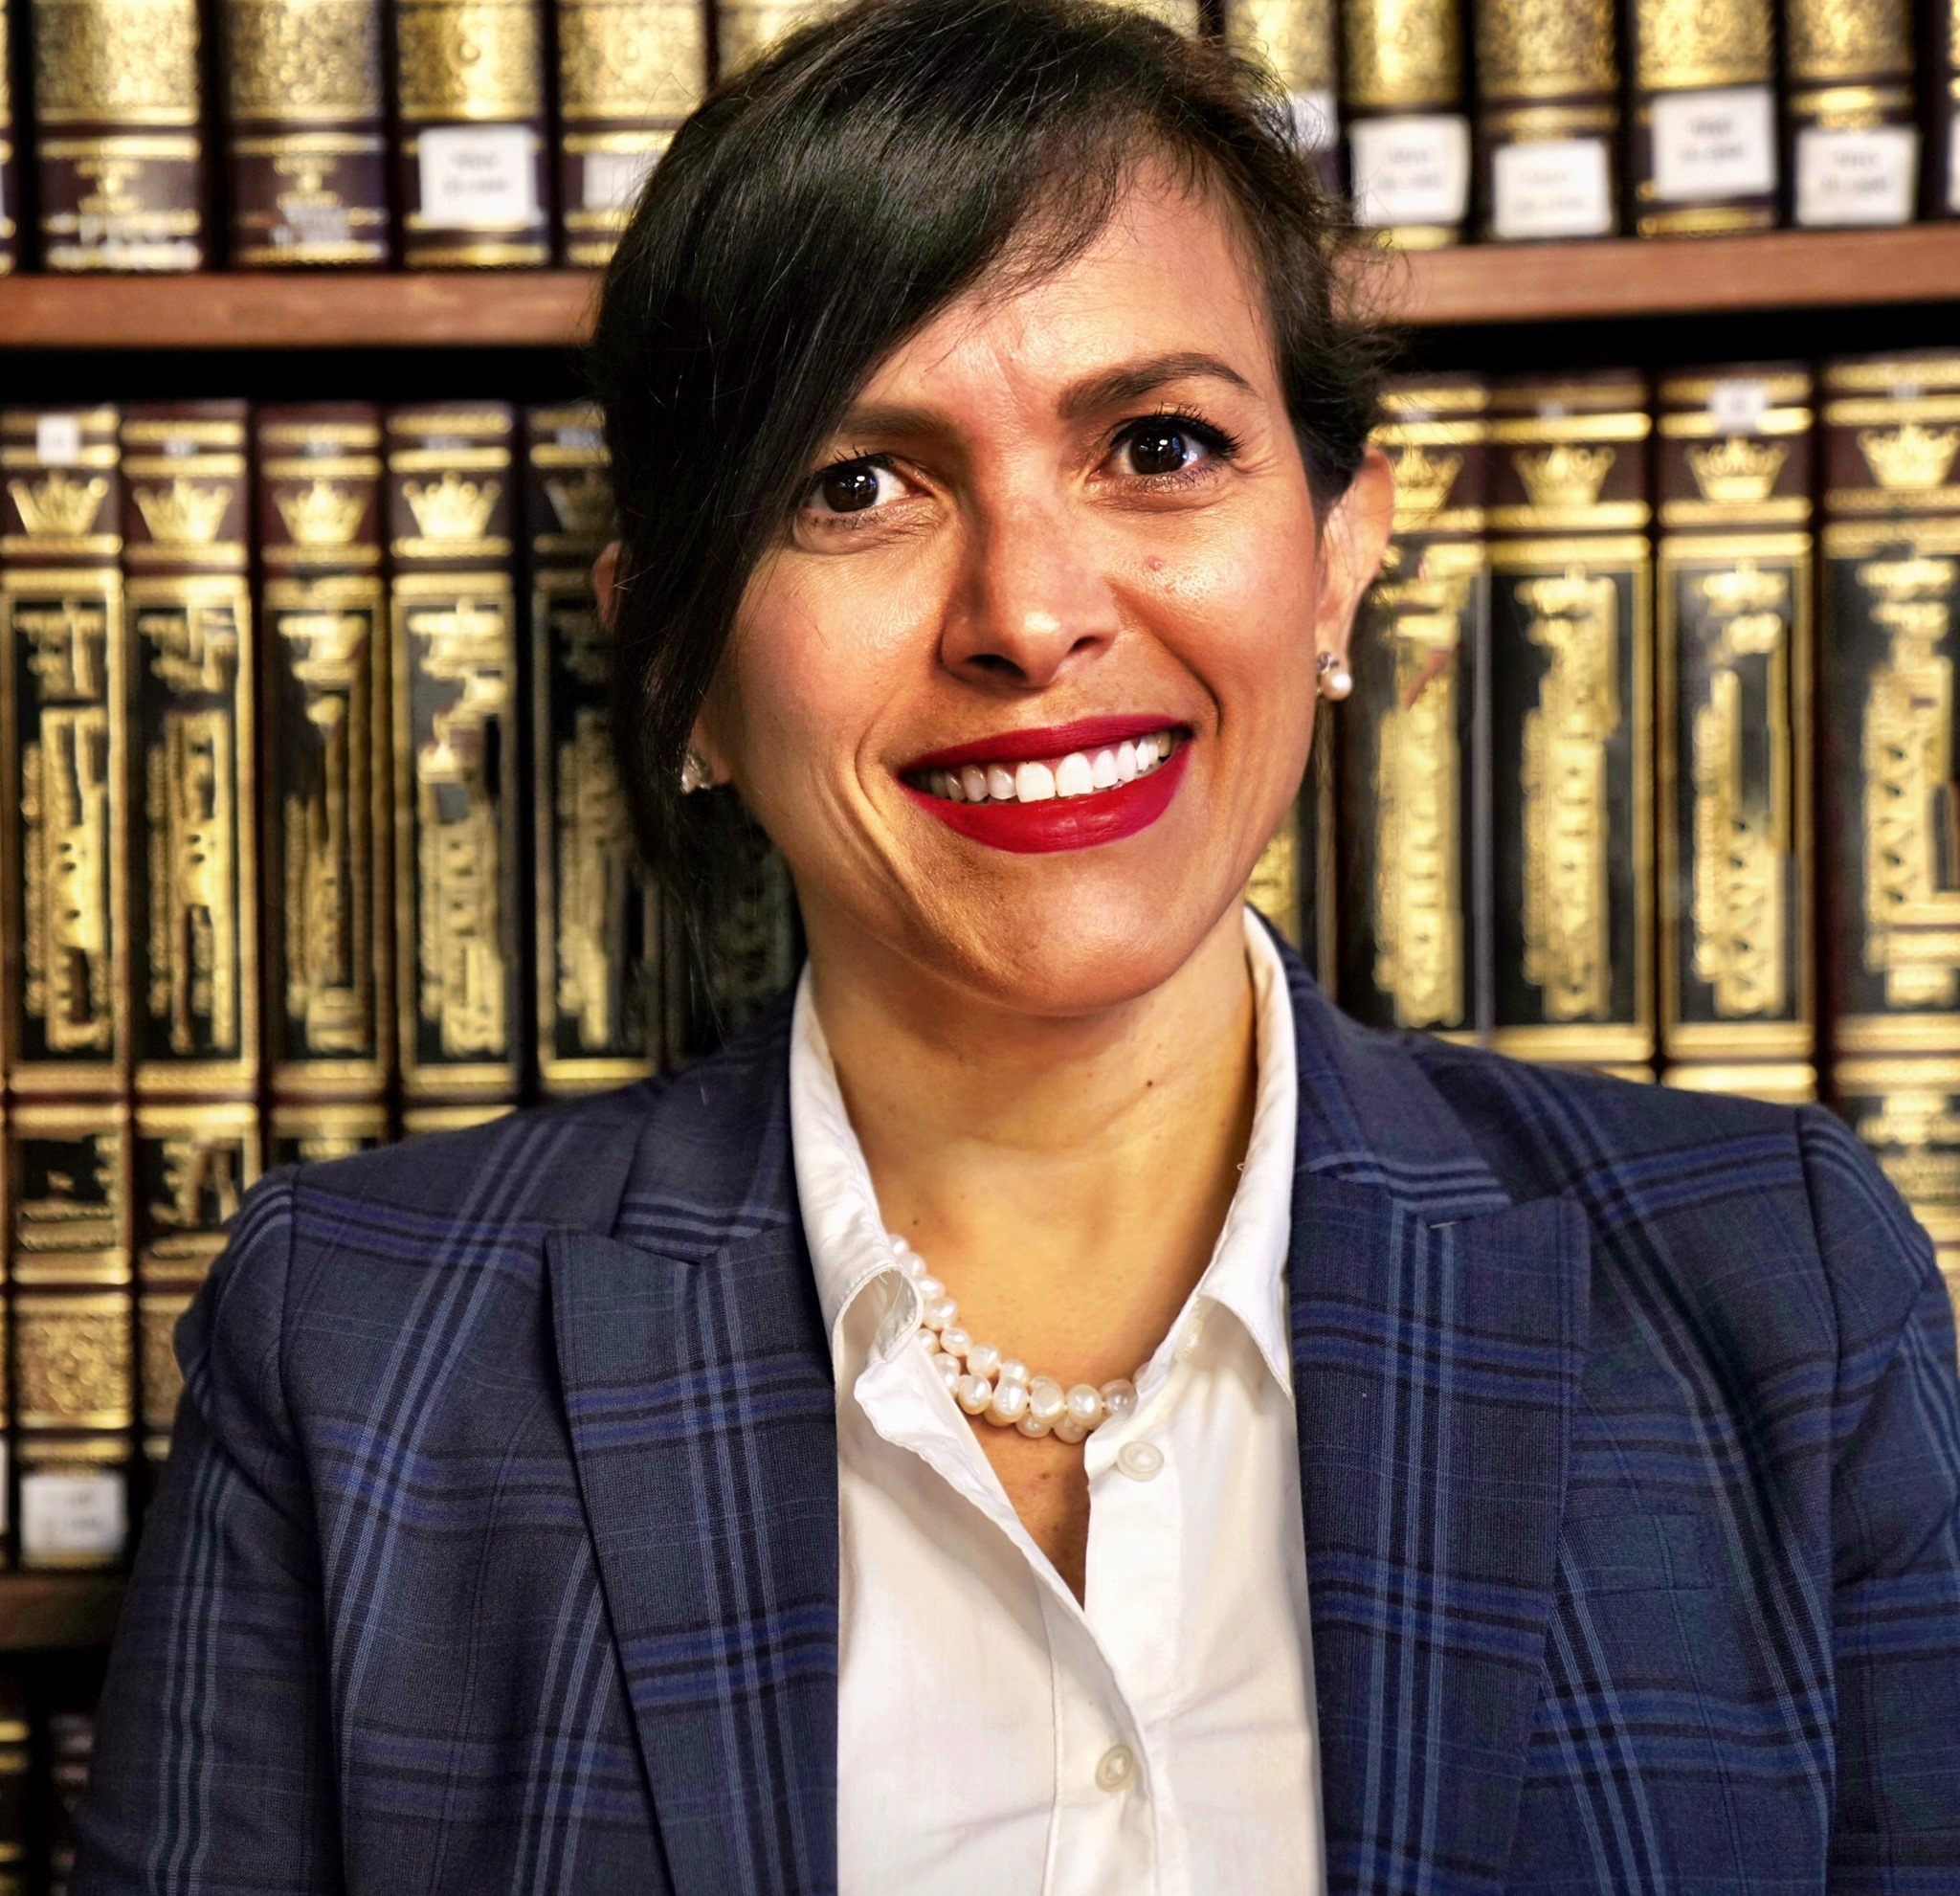 Lumarie Maldonado Cruz defeated Wyatt Gibbons by more than 20 percentage points in the first contested Democracy primary for a Queens Civil Court judgeship in decades. Photo courtesy of Lumarie Maldonado-Cruz.